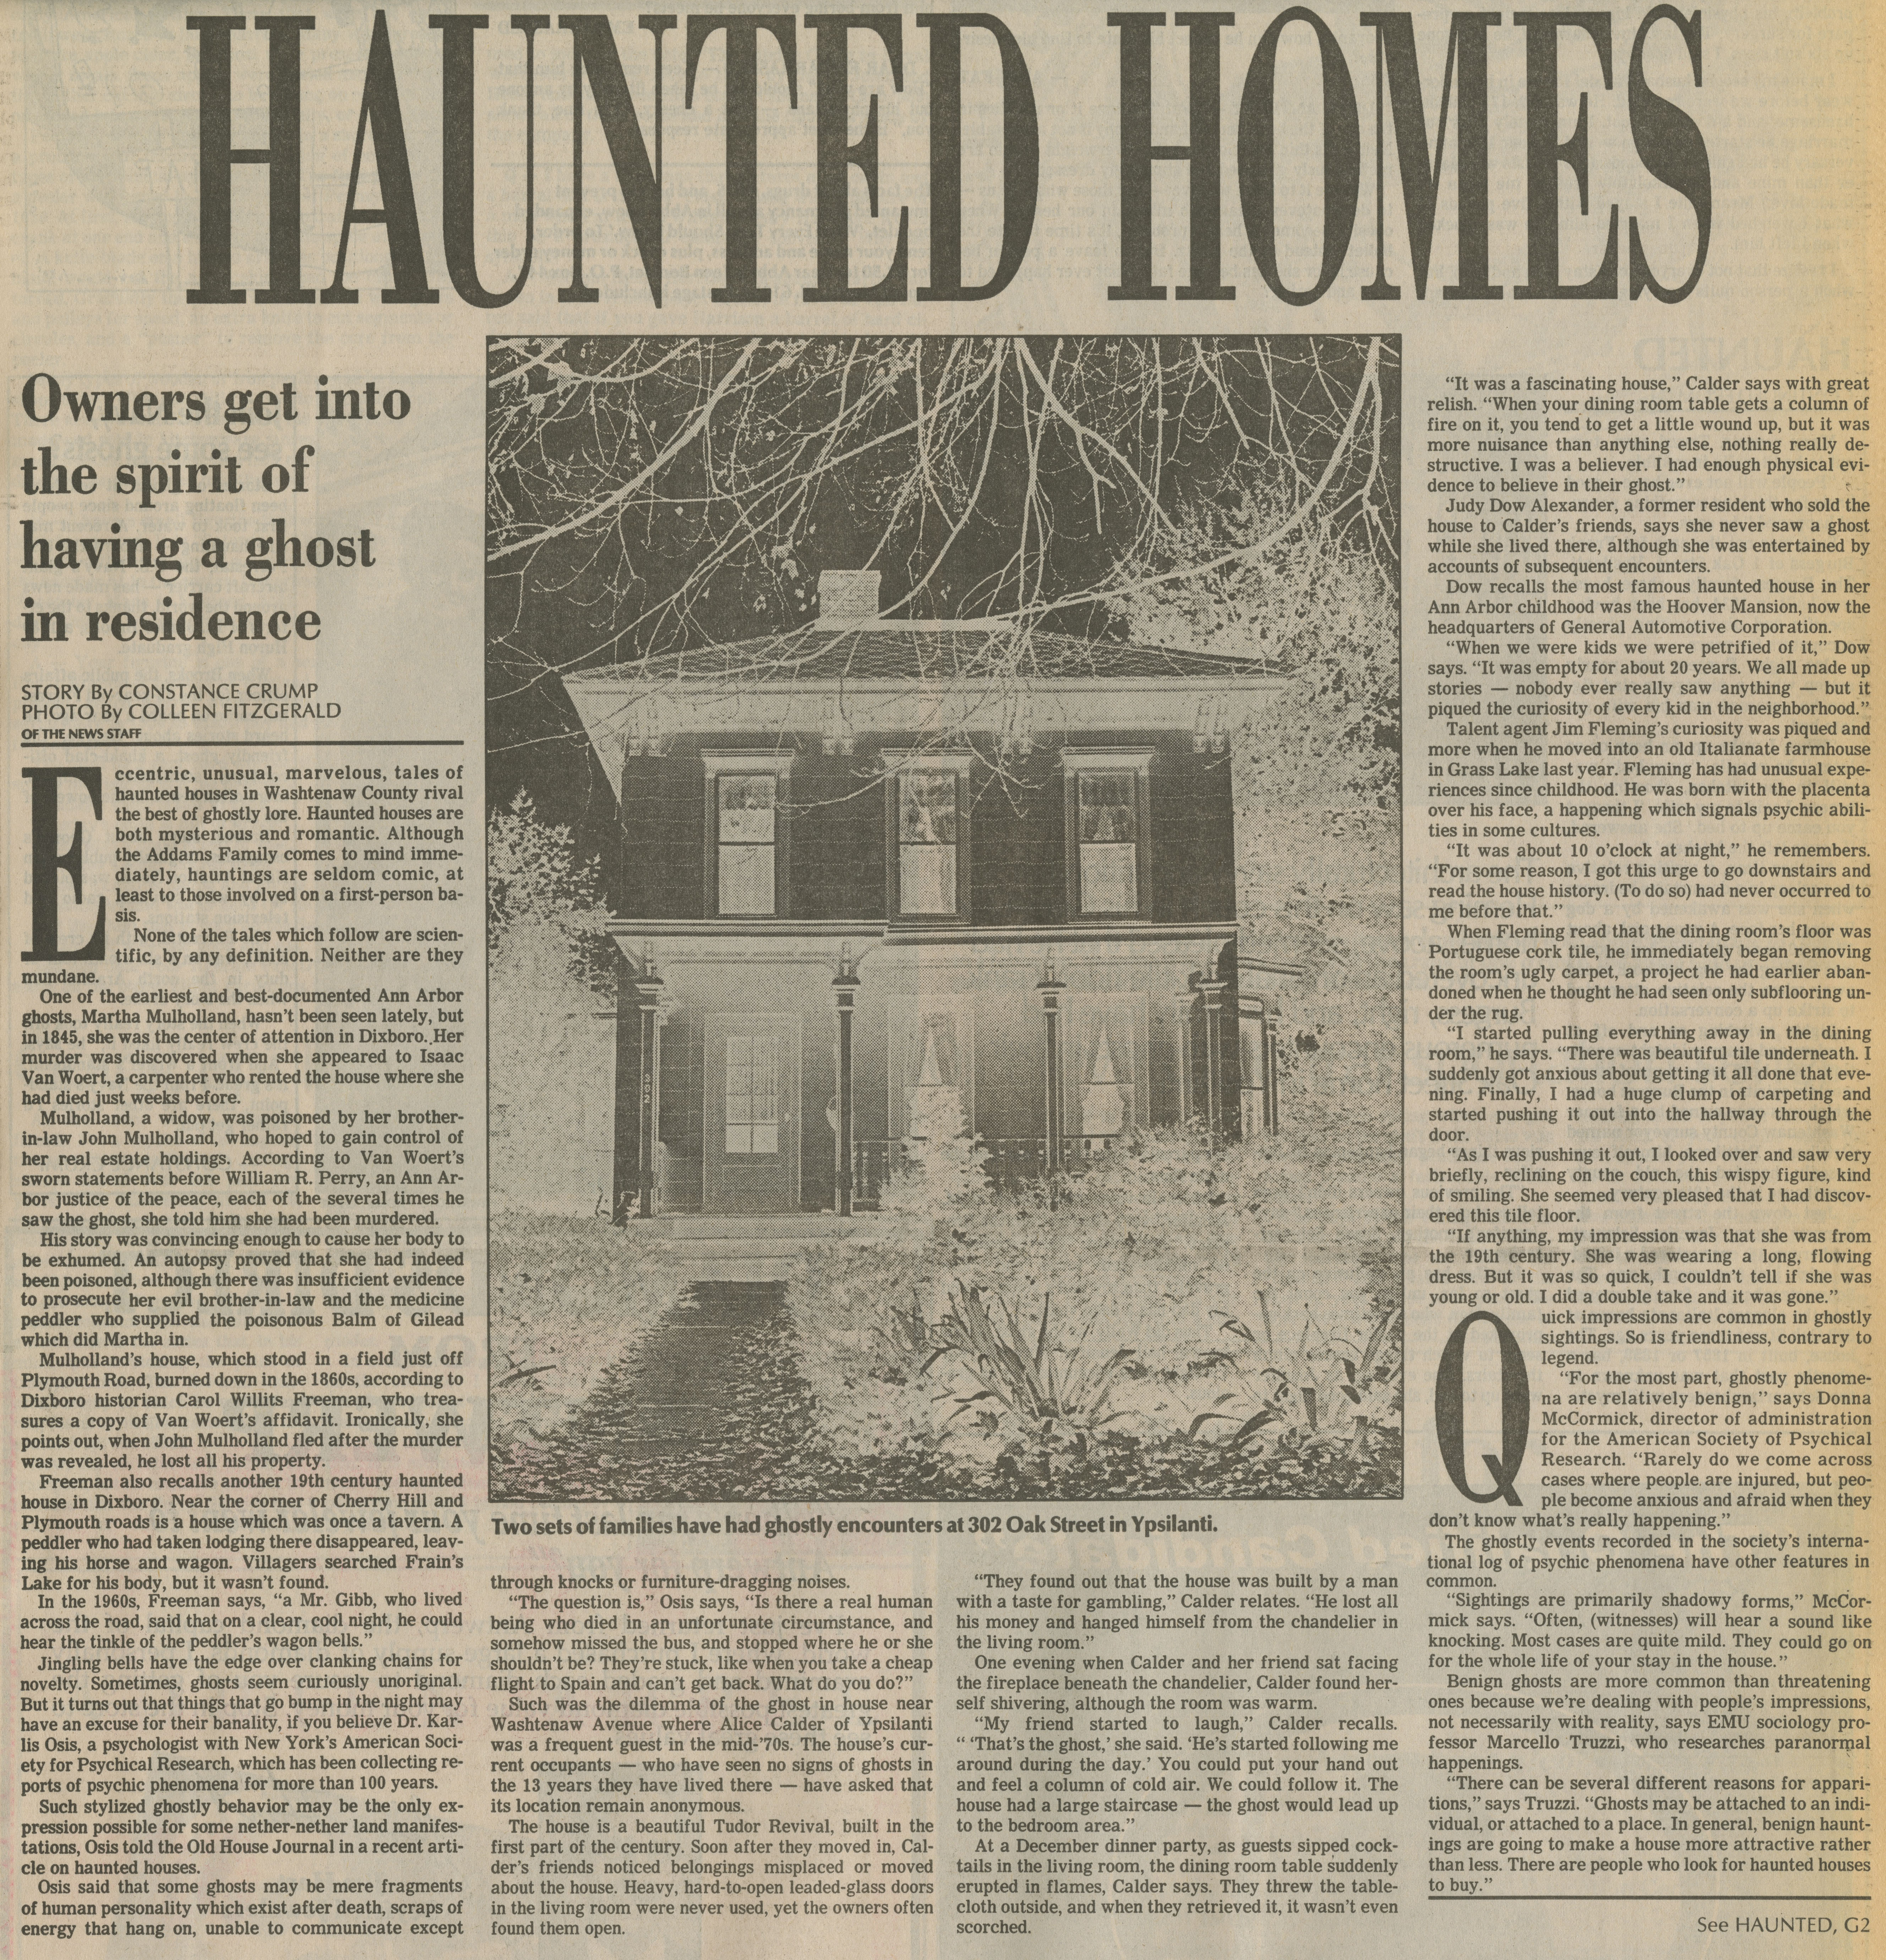 Haunted Homes image